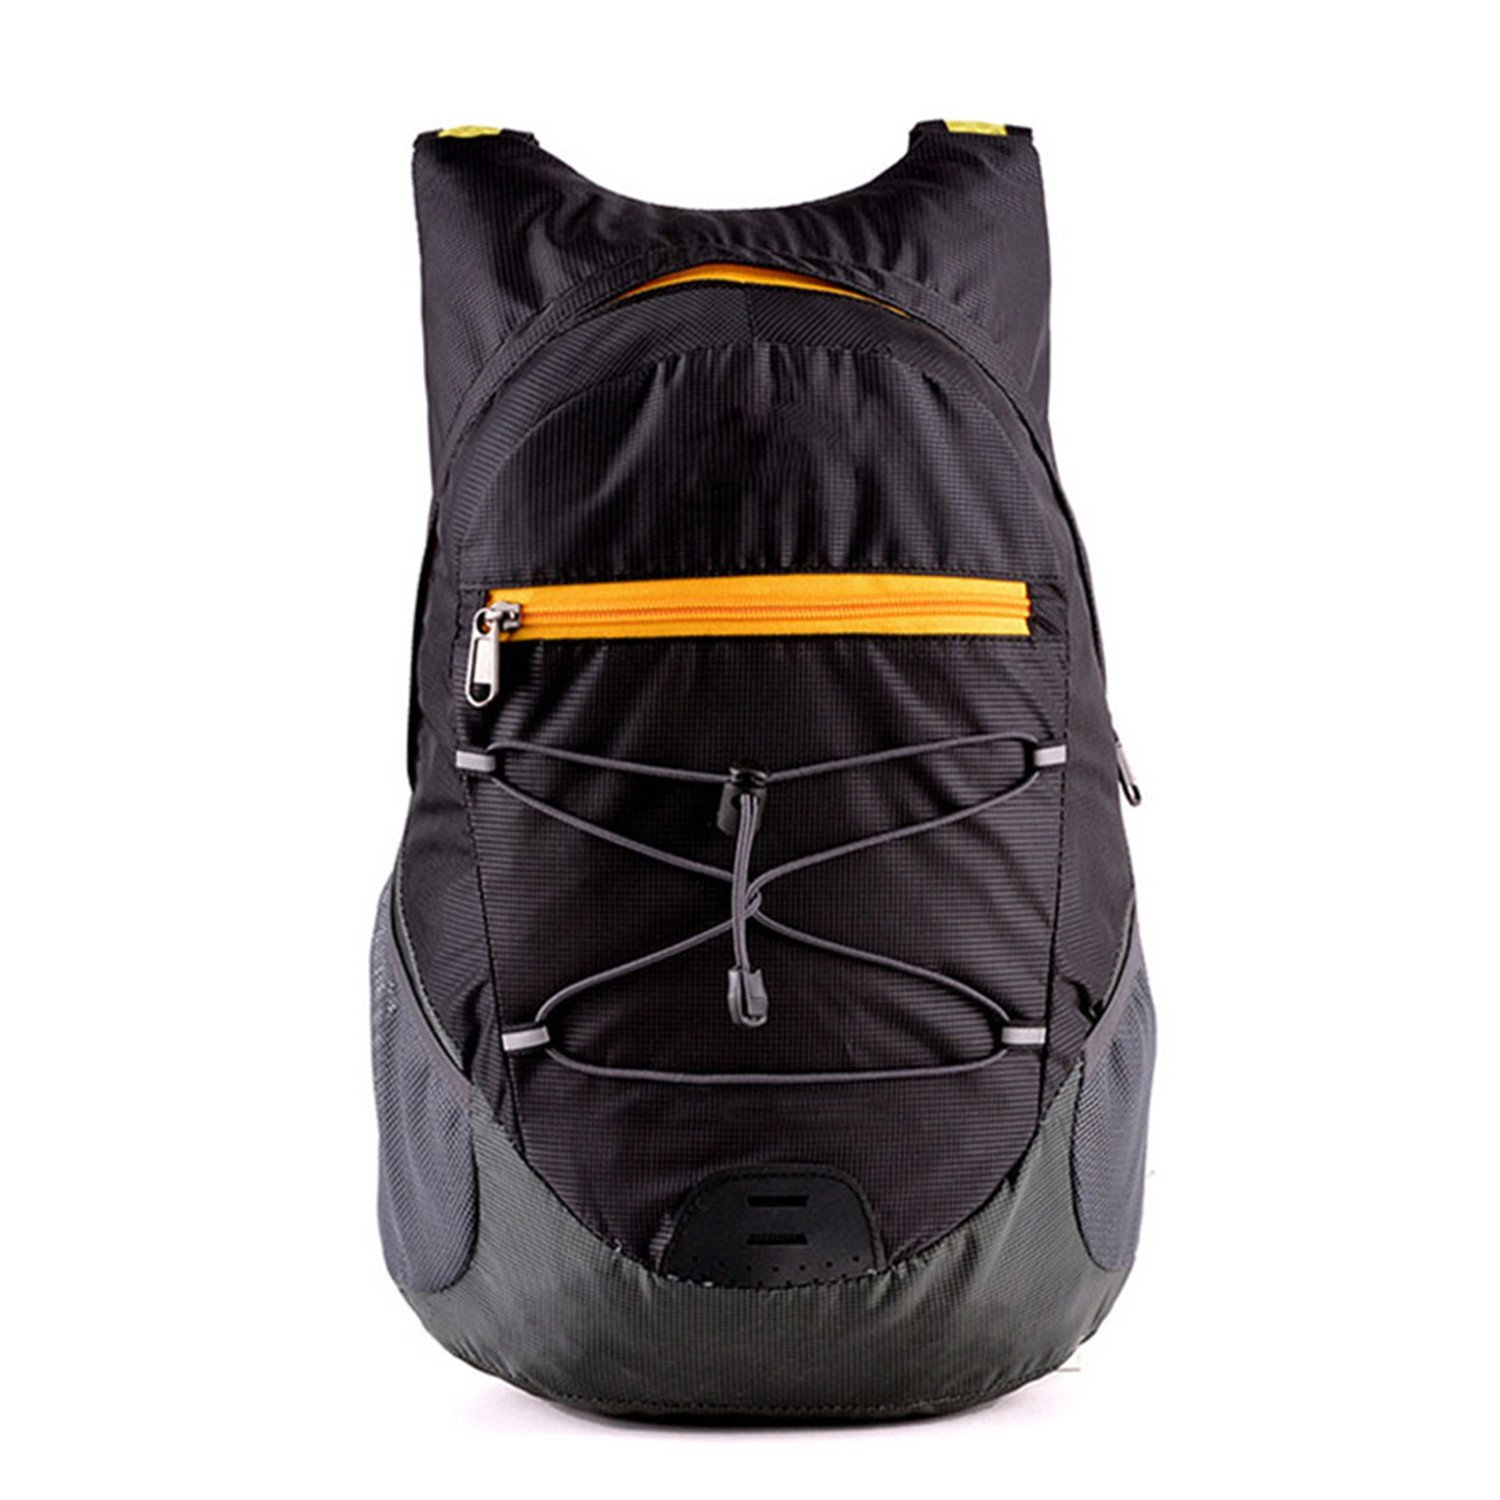 8613bdff7074 Get Quotations · Pajamasea Outdoor Sports Bags Extreme Challenge Waterproof  Soft Mountaineering Bags Male Camping Hiking Rucksacks